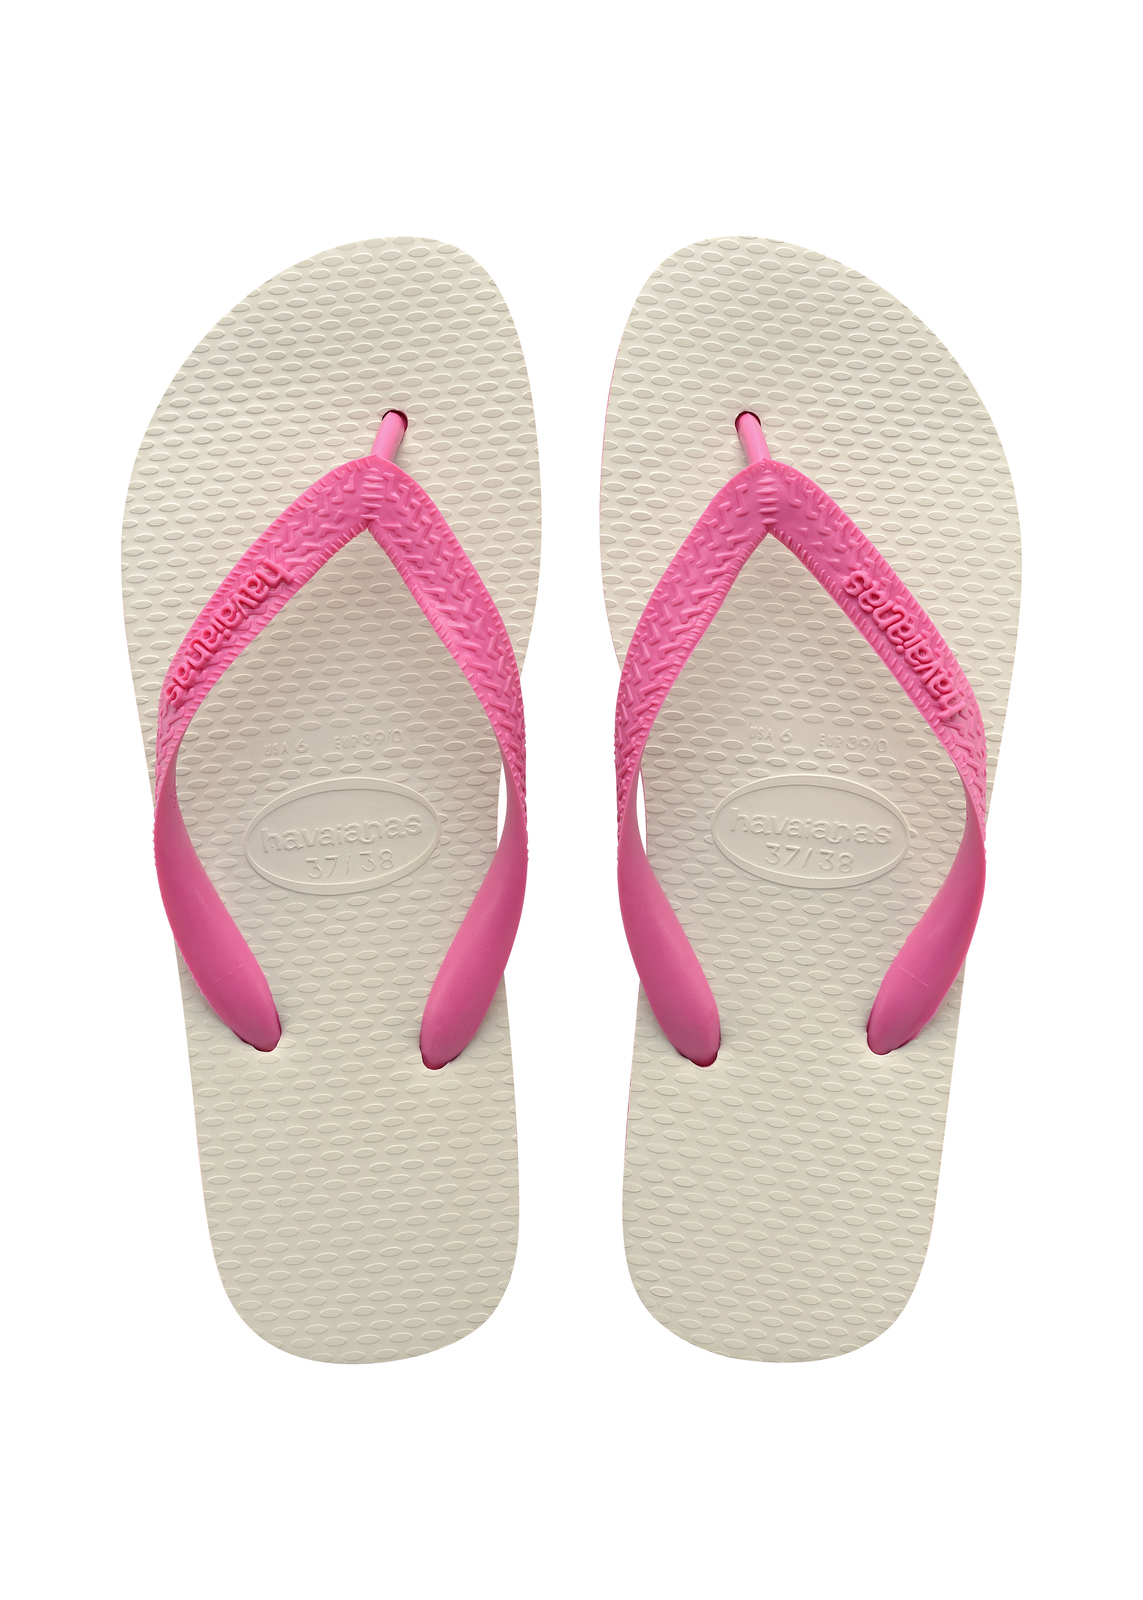 Havaianas Traditional Shocking Pink Thongs - Size: 33/34